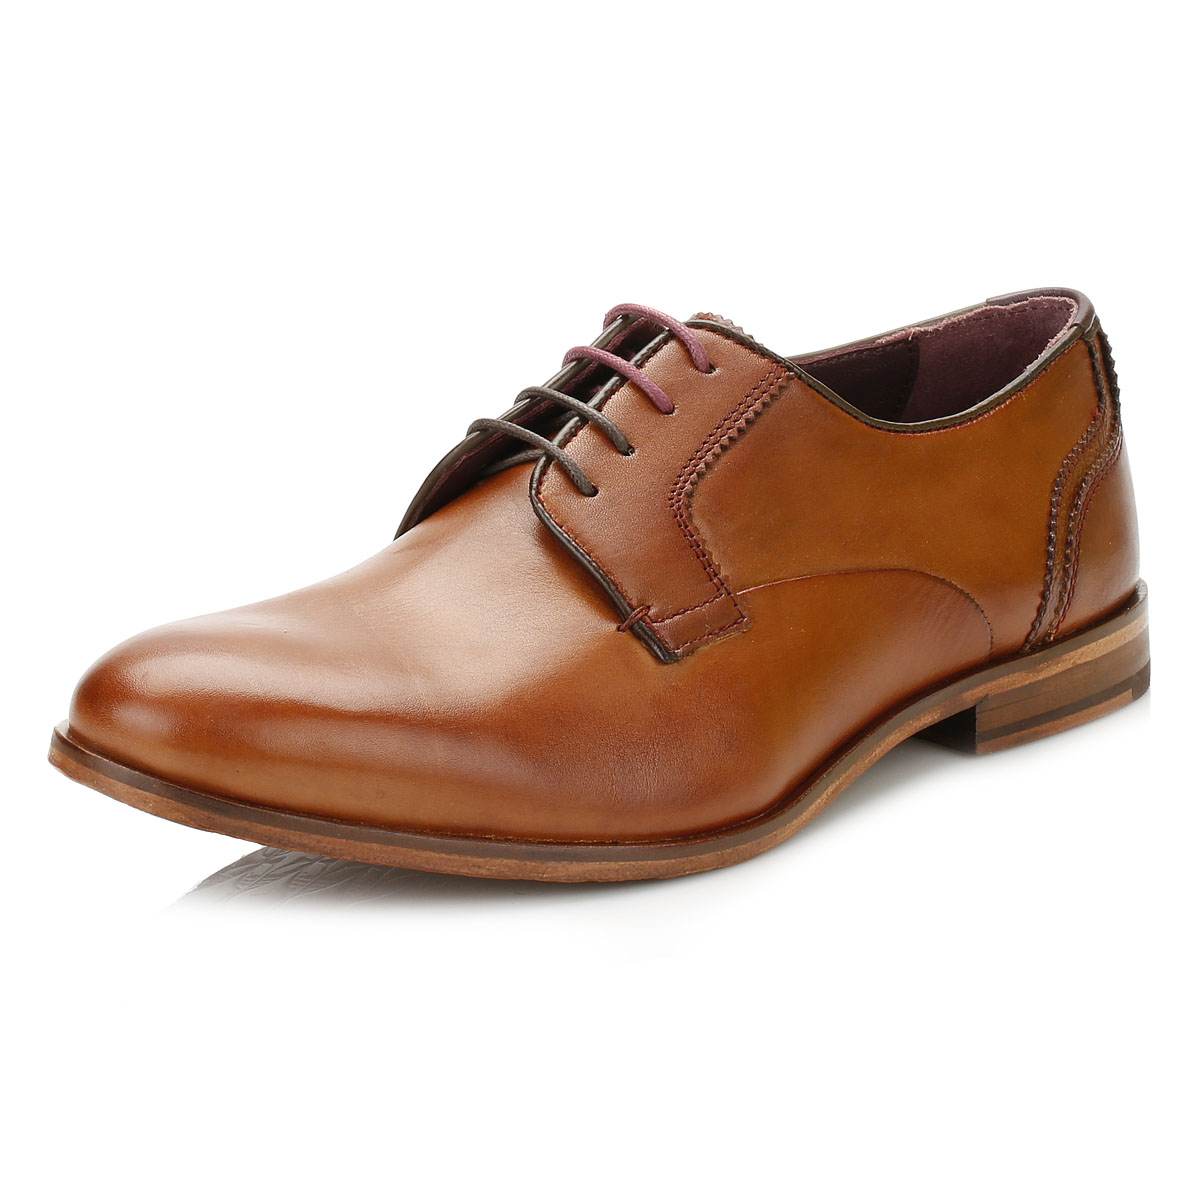 Derby Shoes - Mens Derby Shoes. Enjoy our unique selection of men's derby shoes and find the right footwear for your wardrobe. You should look good in your derby shoes and we want to help.